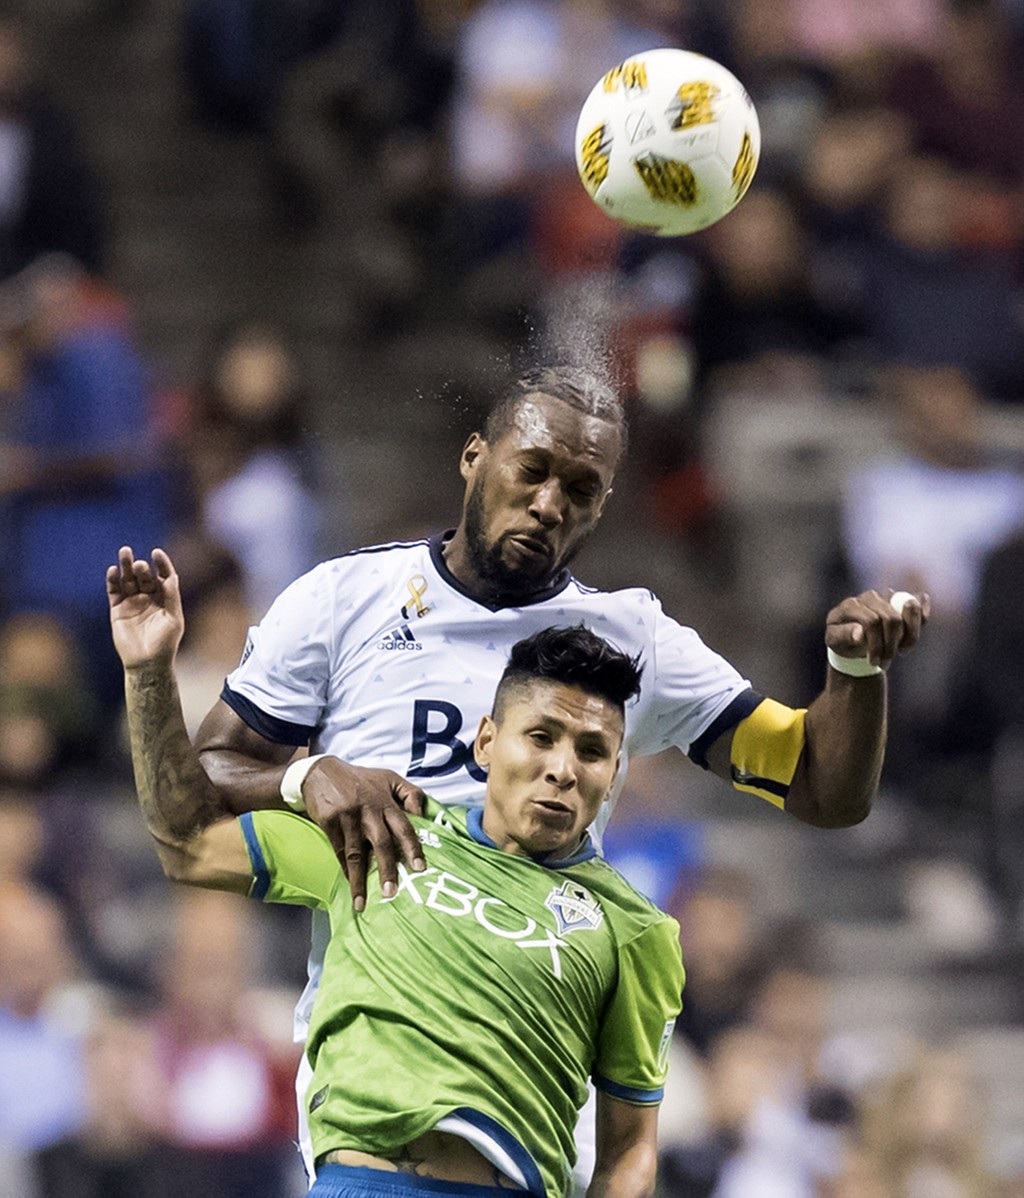 Vancouver Whitecaps' Kendall Waston, back, heads the ball behind Seattle Sounders' Raul Ruidiaz during the first half of an MLS soccer match, Saturday...